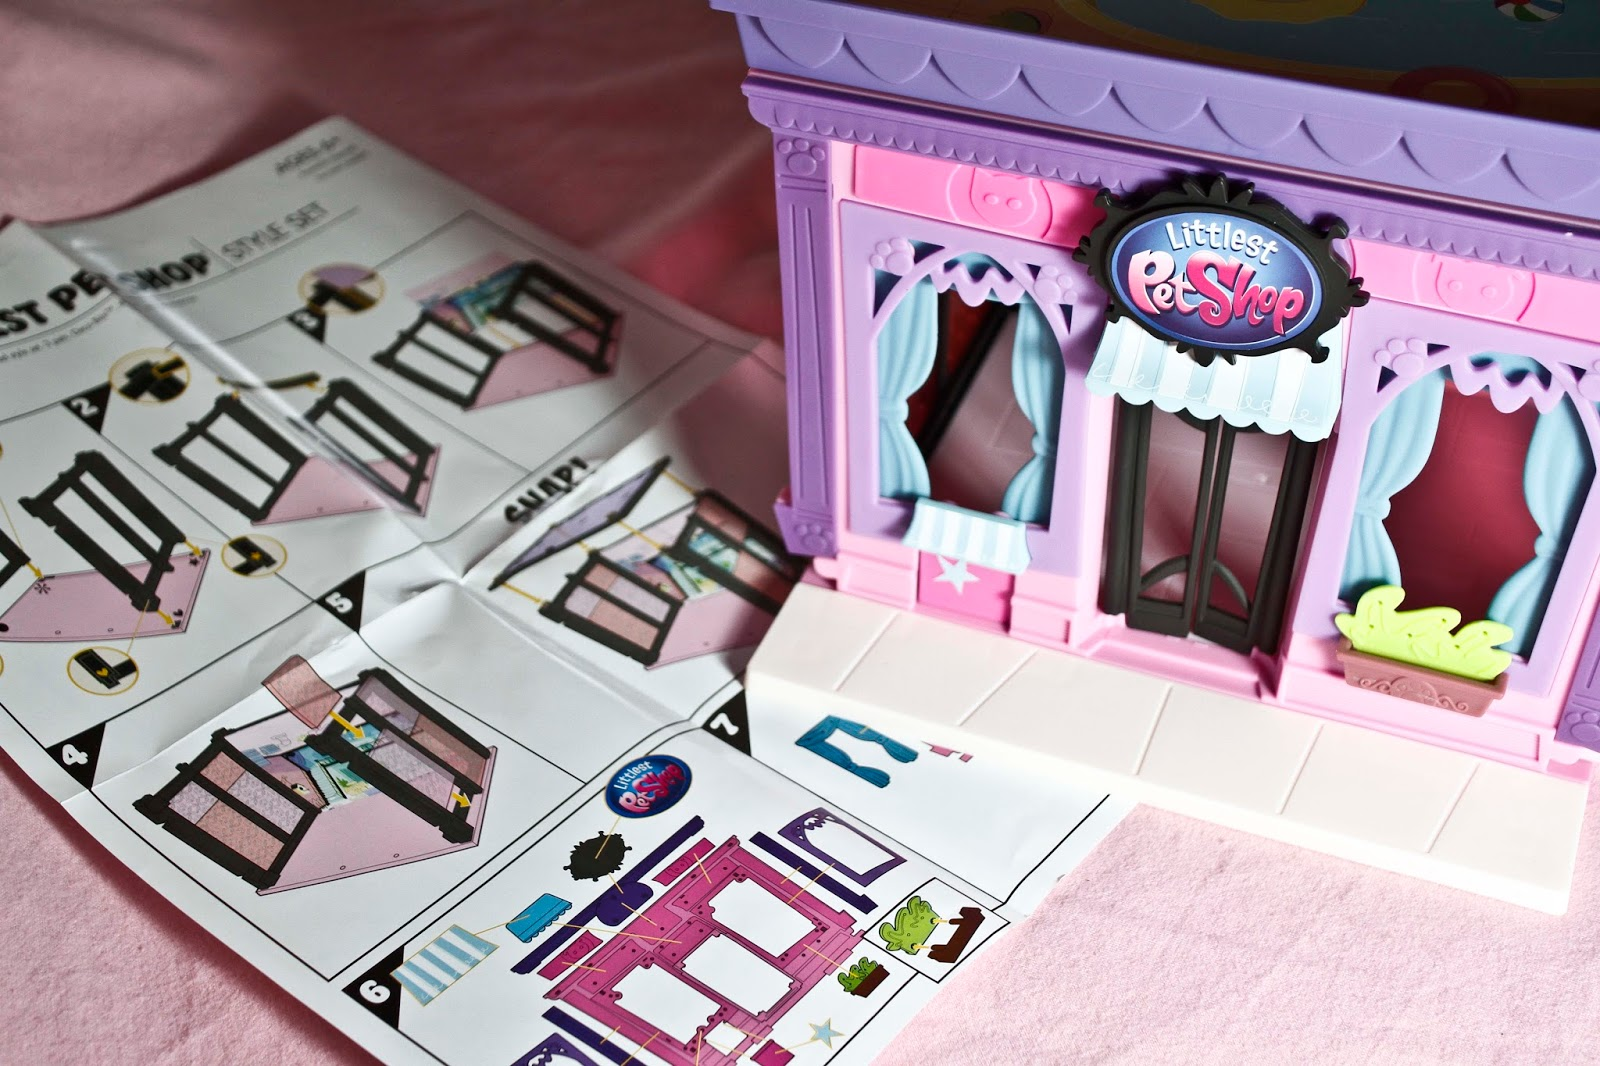 simple to follow instructions with the completed littlest pet shop building next to the littlest pet shop style set